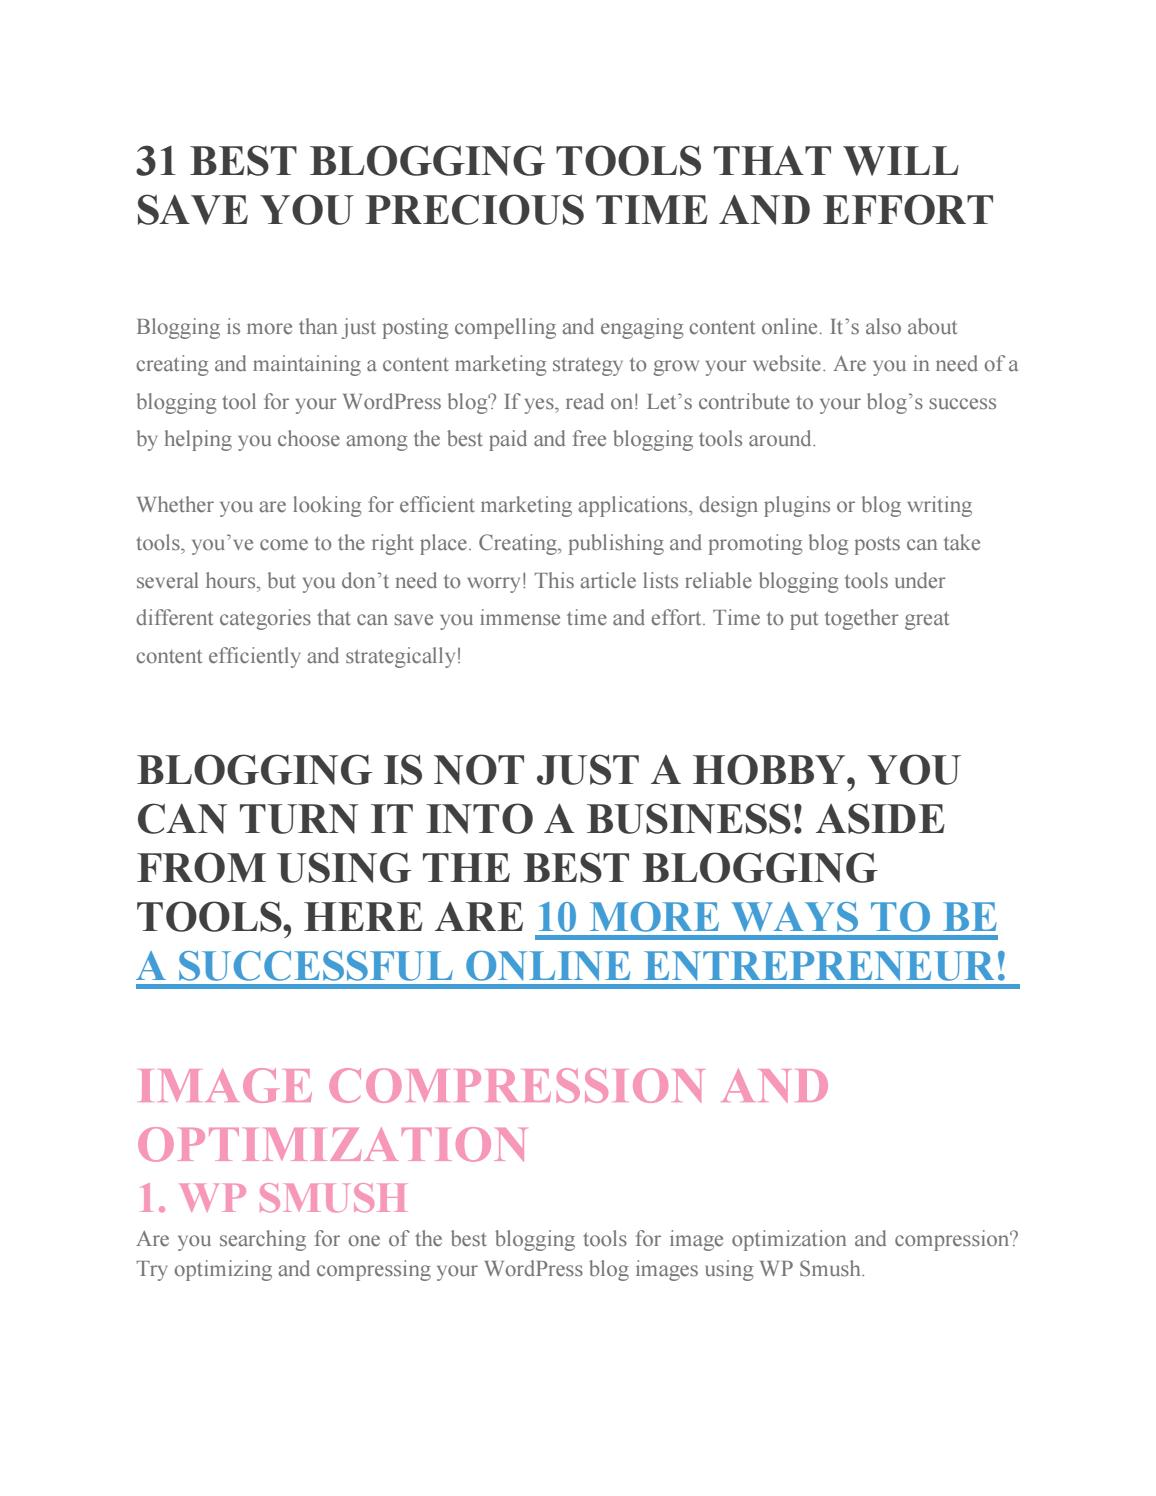 31 Best Blogging Tools that will Save Your Precious Time and